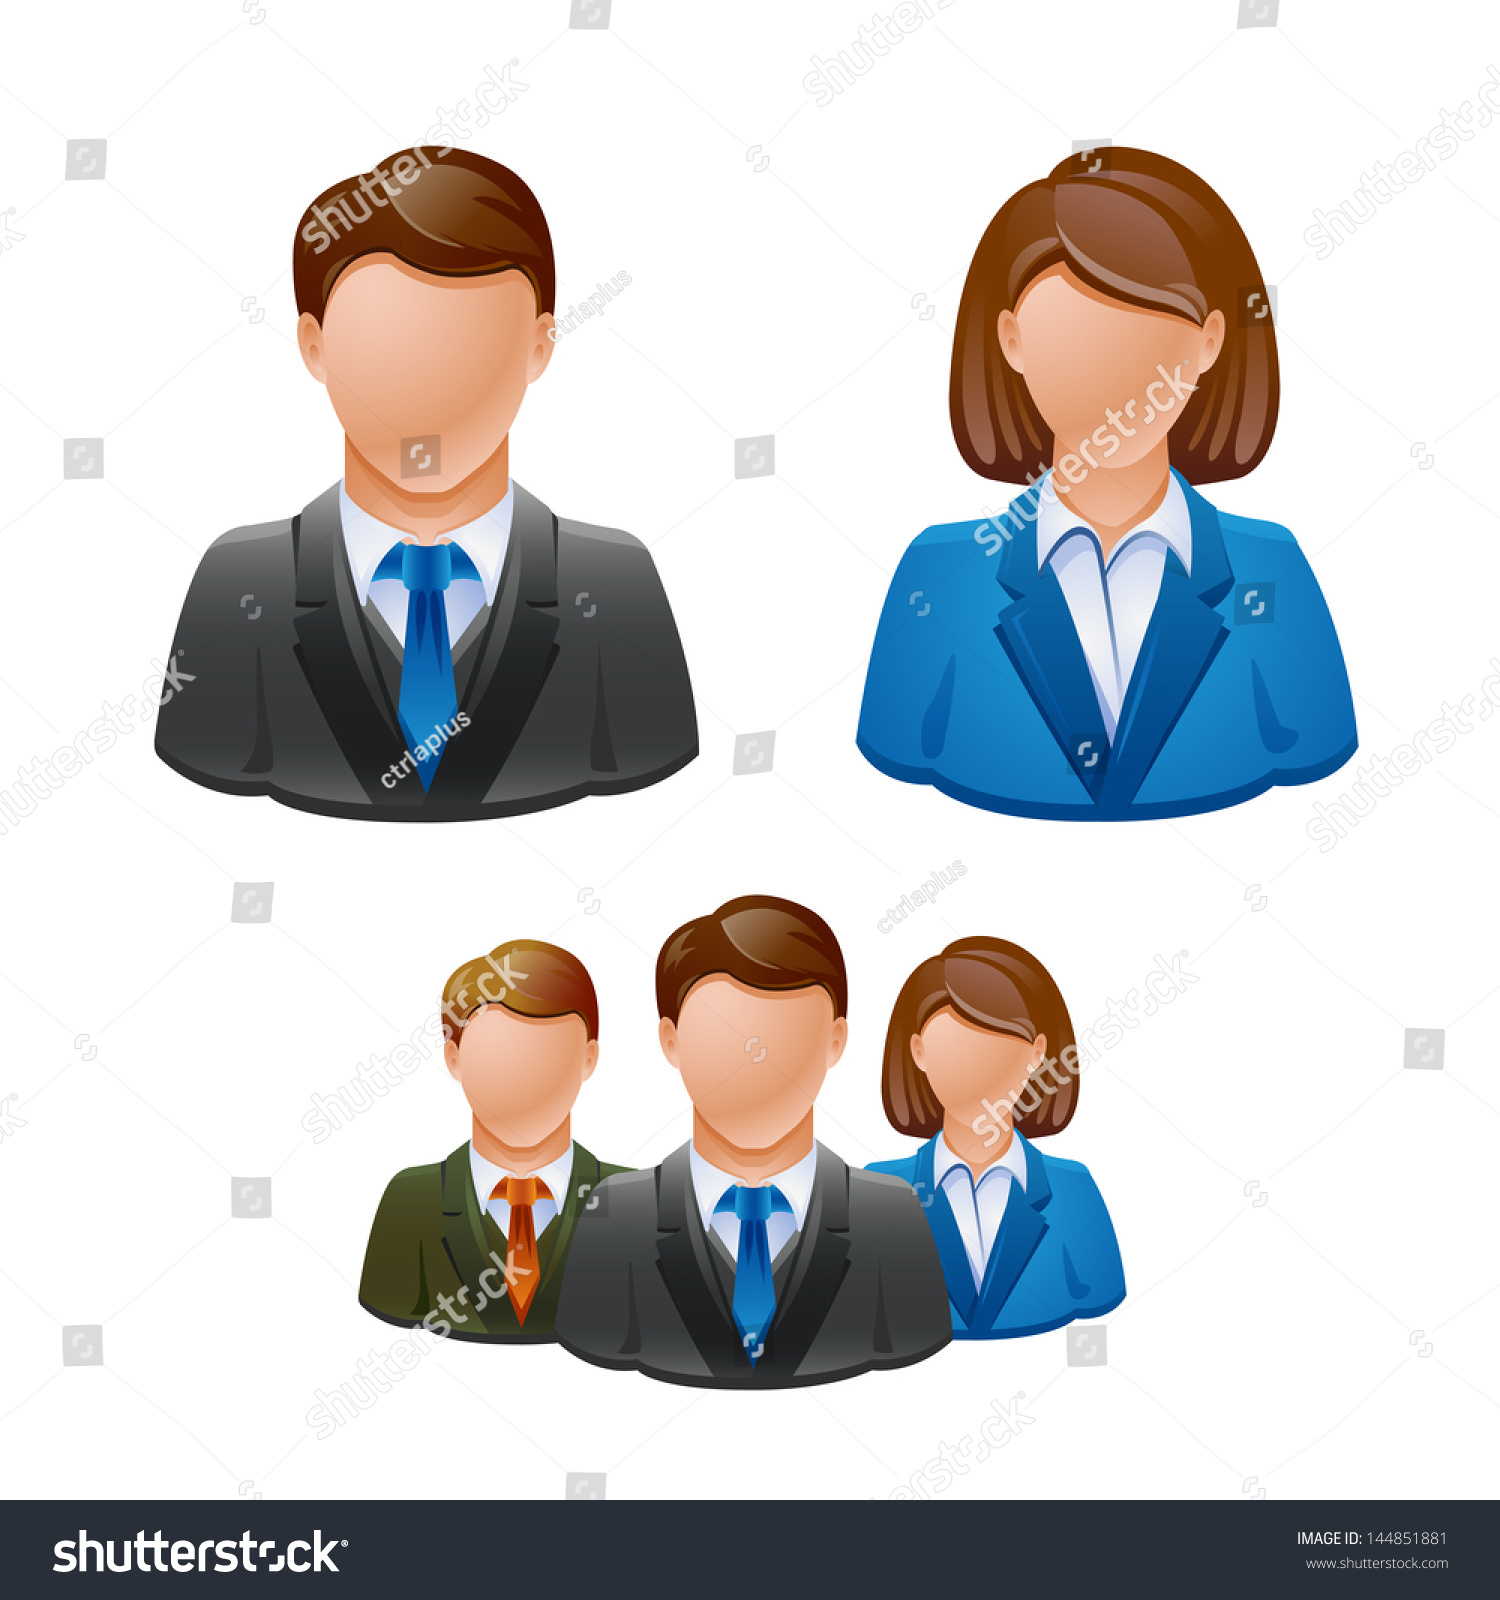 stock-vector-business-man-and-woman-icon-vector-illustration-144851881.jpg